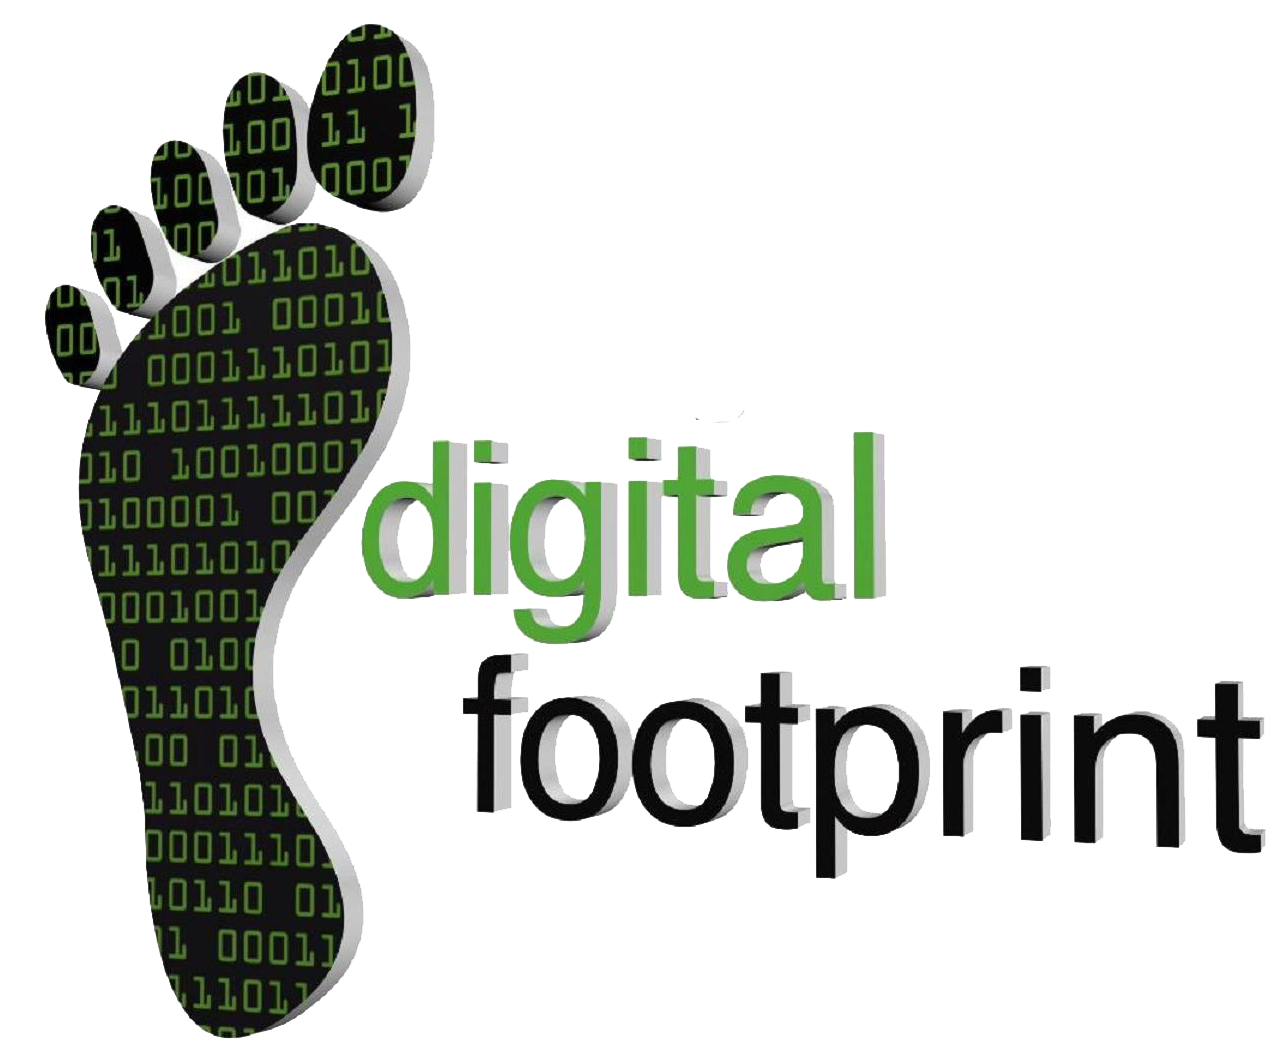 Digital footprint png. Limited it systems engineering